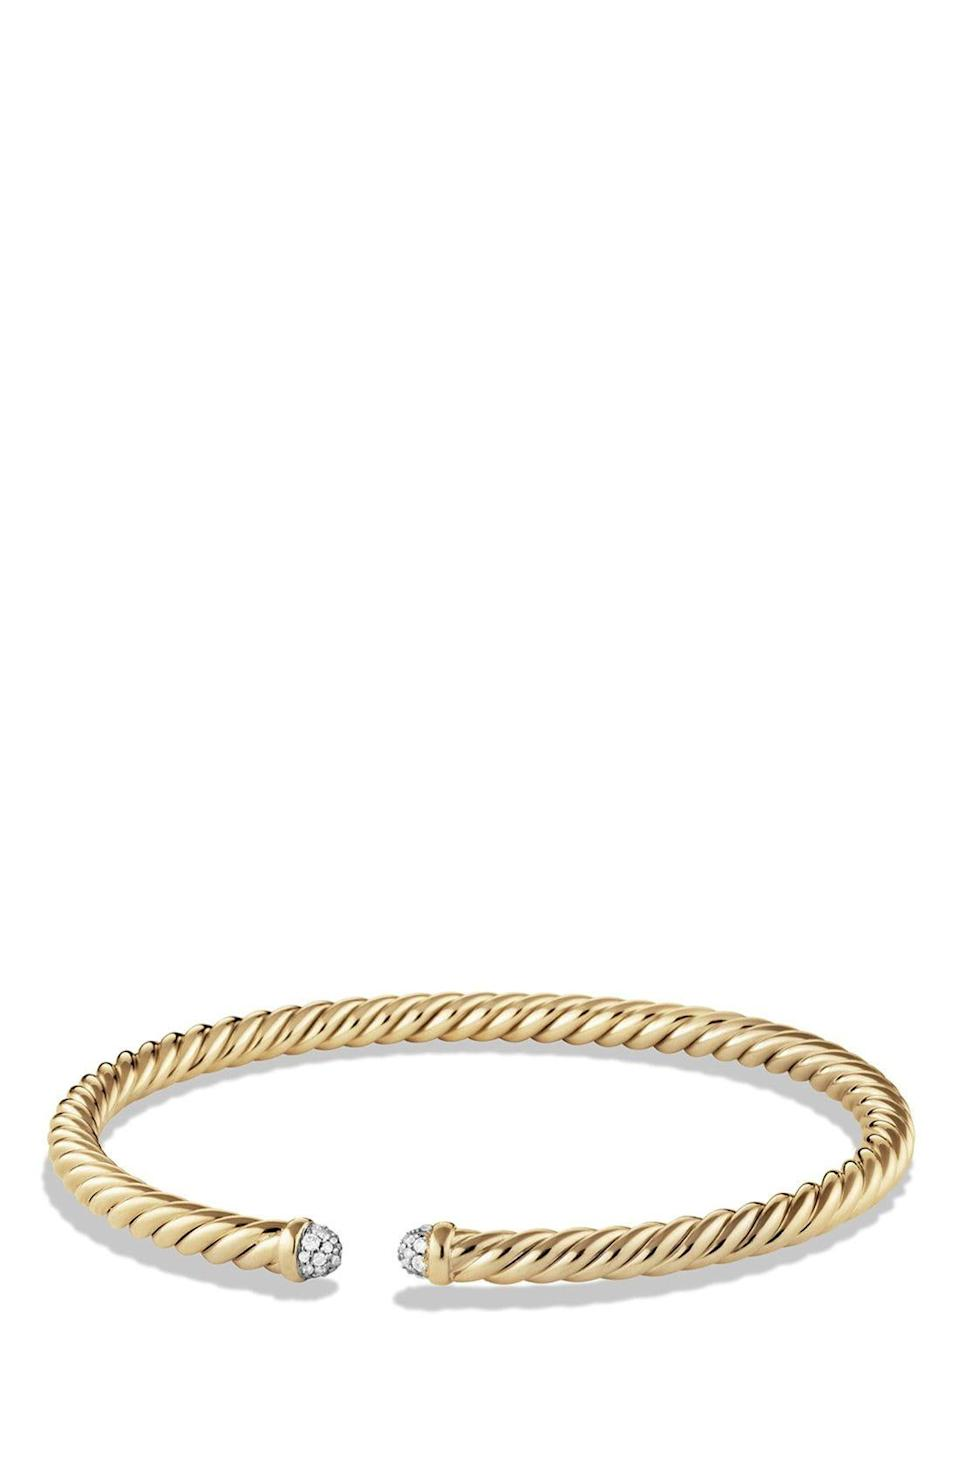 """<p><strong>DAVID YURMAN</strong></p><p>nordstrom.com</p><p><strong>$2500.00</strong></p><p><a href=""""https://go.redirectingat.com?id=74968X1596630&url=https%3A%2F%2Fshop.nordstrom.com%2Fs%2Fdavid-yurman-cable-spira-bracelet-in-18k-gold-4mm%2F3825135&sref=https%3A%2F%2Fwww.townandcountrymag.com%2Fstyle%2Fjewelry-and-watches%2Fg34741522%2Fbest-jewelry-gift-ideas%2F"""" rel=""""nofollow noopener"""" target=""""_blank"""" data-ylk=""""slk:Shop Now"""" class=""""link rapid-noclick-resp"""">Shop Now</a></p><p>The cable bracelet was one of David Yurman's first designs, and it continues to be a hit today. The diamond caps add a touch of sparkle to the utilitarian piece.</p>"""